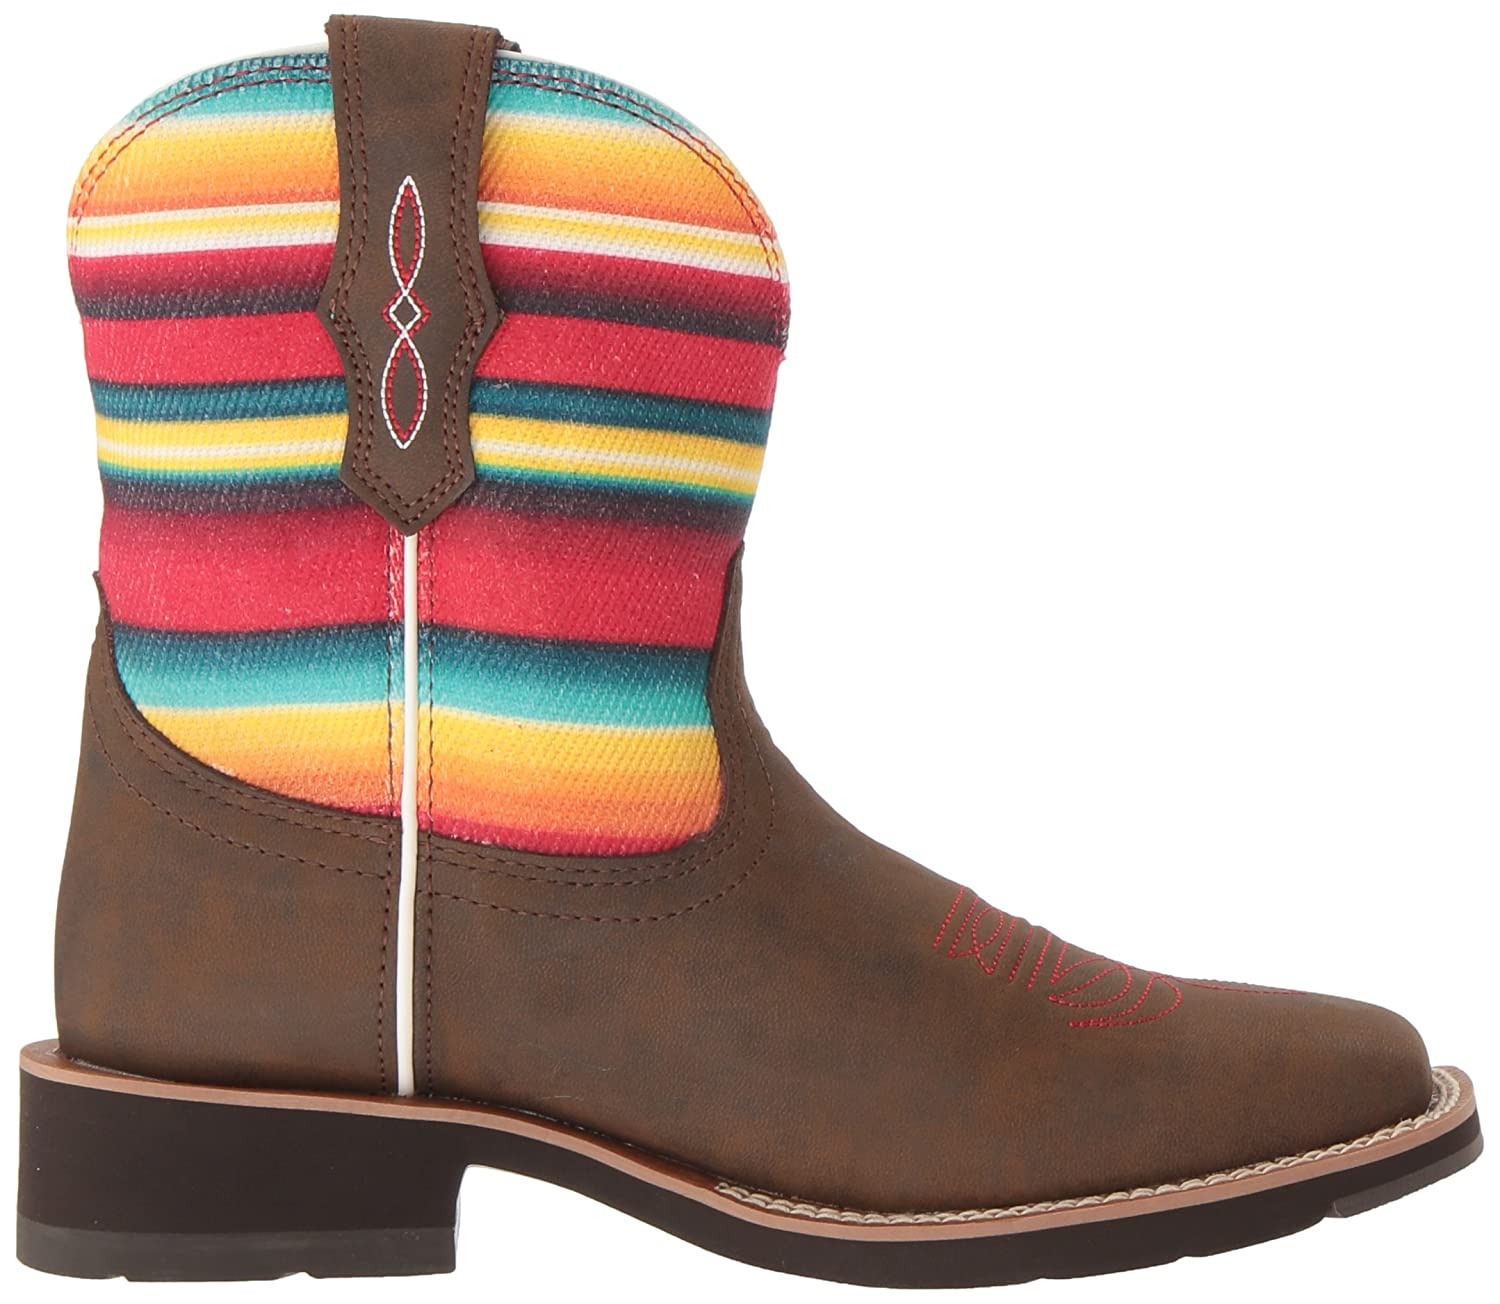 Ariat Women's Rosie Western Cowboy Boot Brown B01L85FG5O 8 B(M) US|Toasted Brown Boot 4995fb